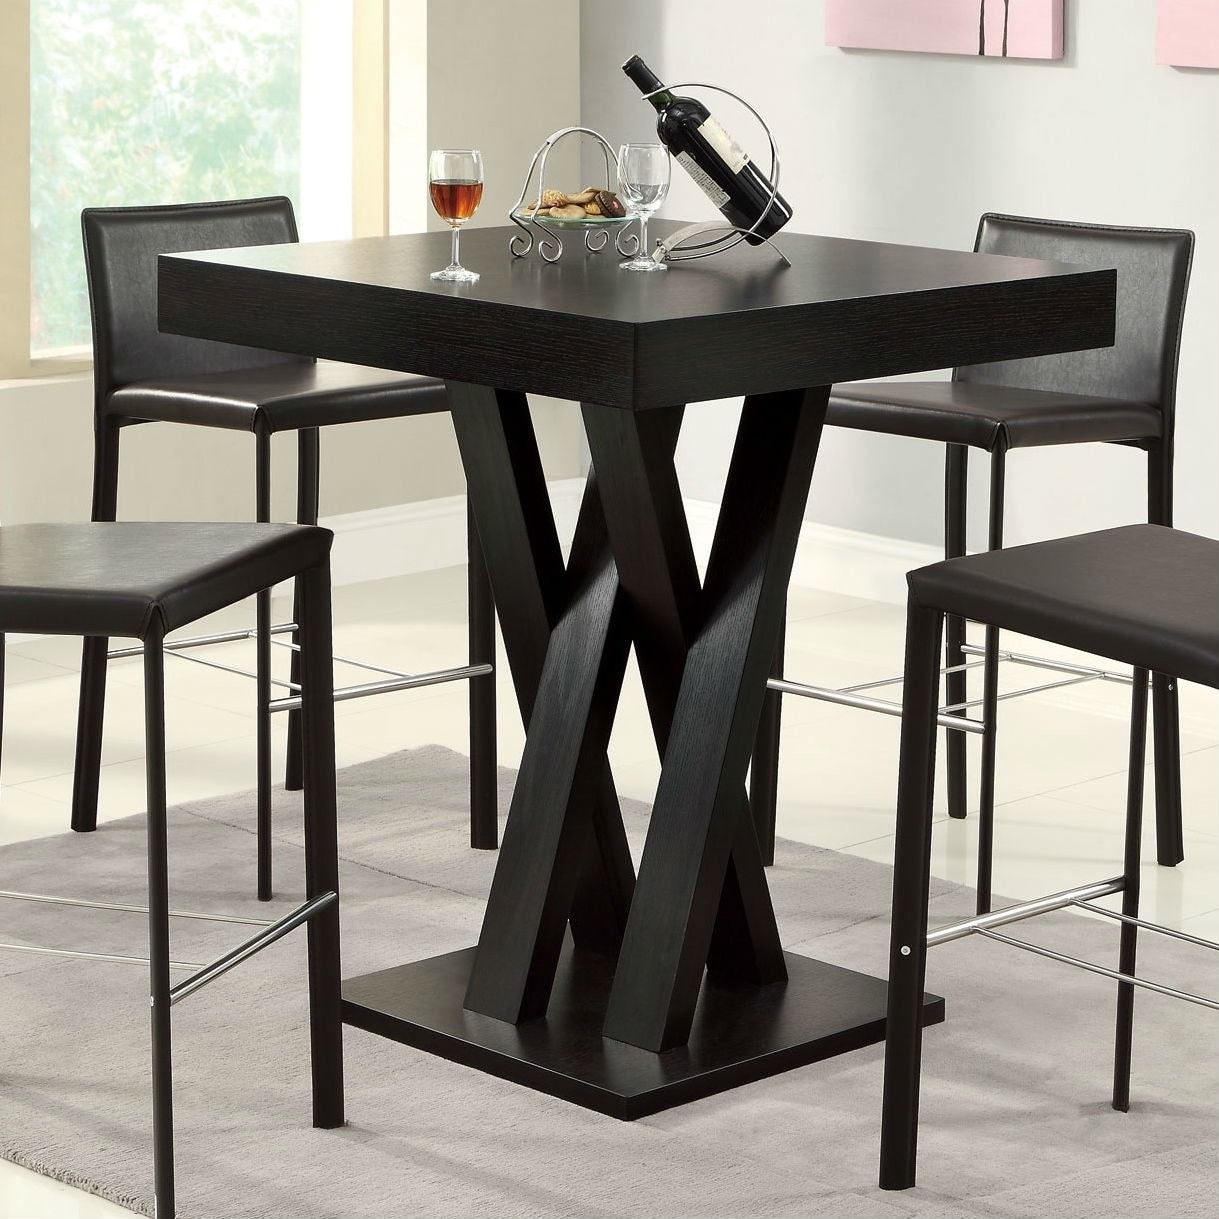 Modern 40 Inch High Square Dining Table In Dark Cappuccino Finish Pictured Overstock 29063423